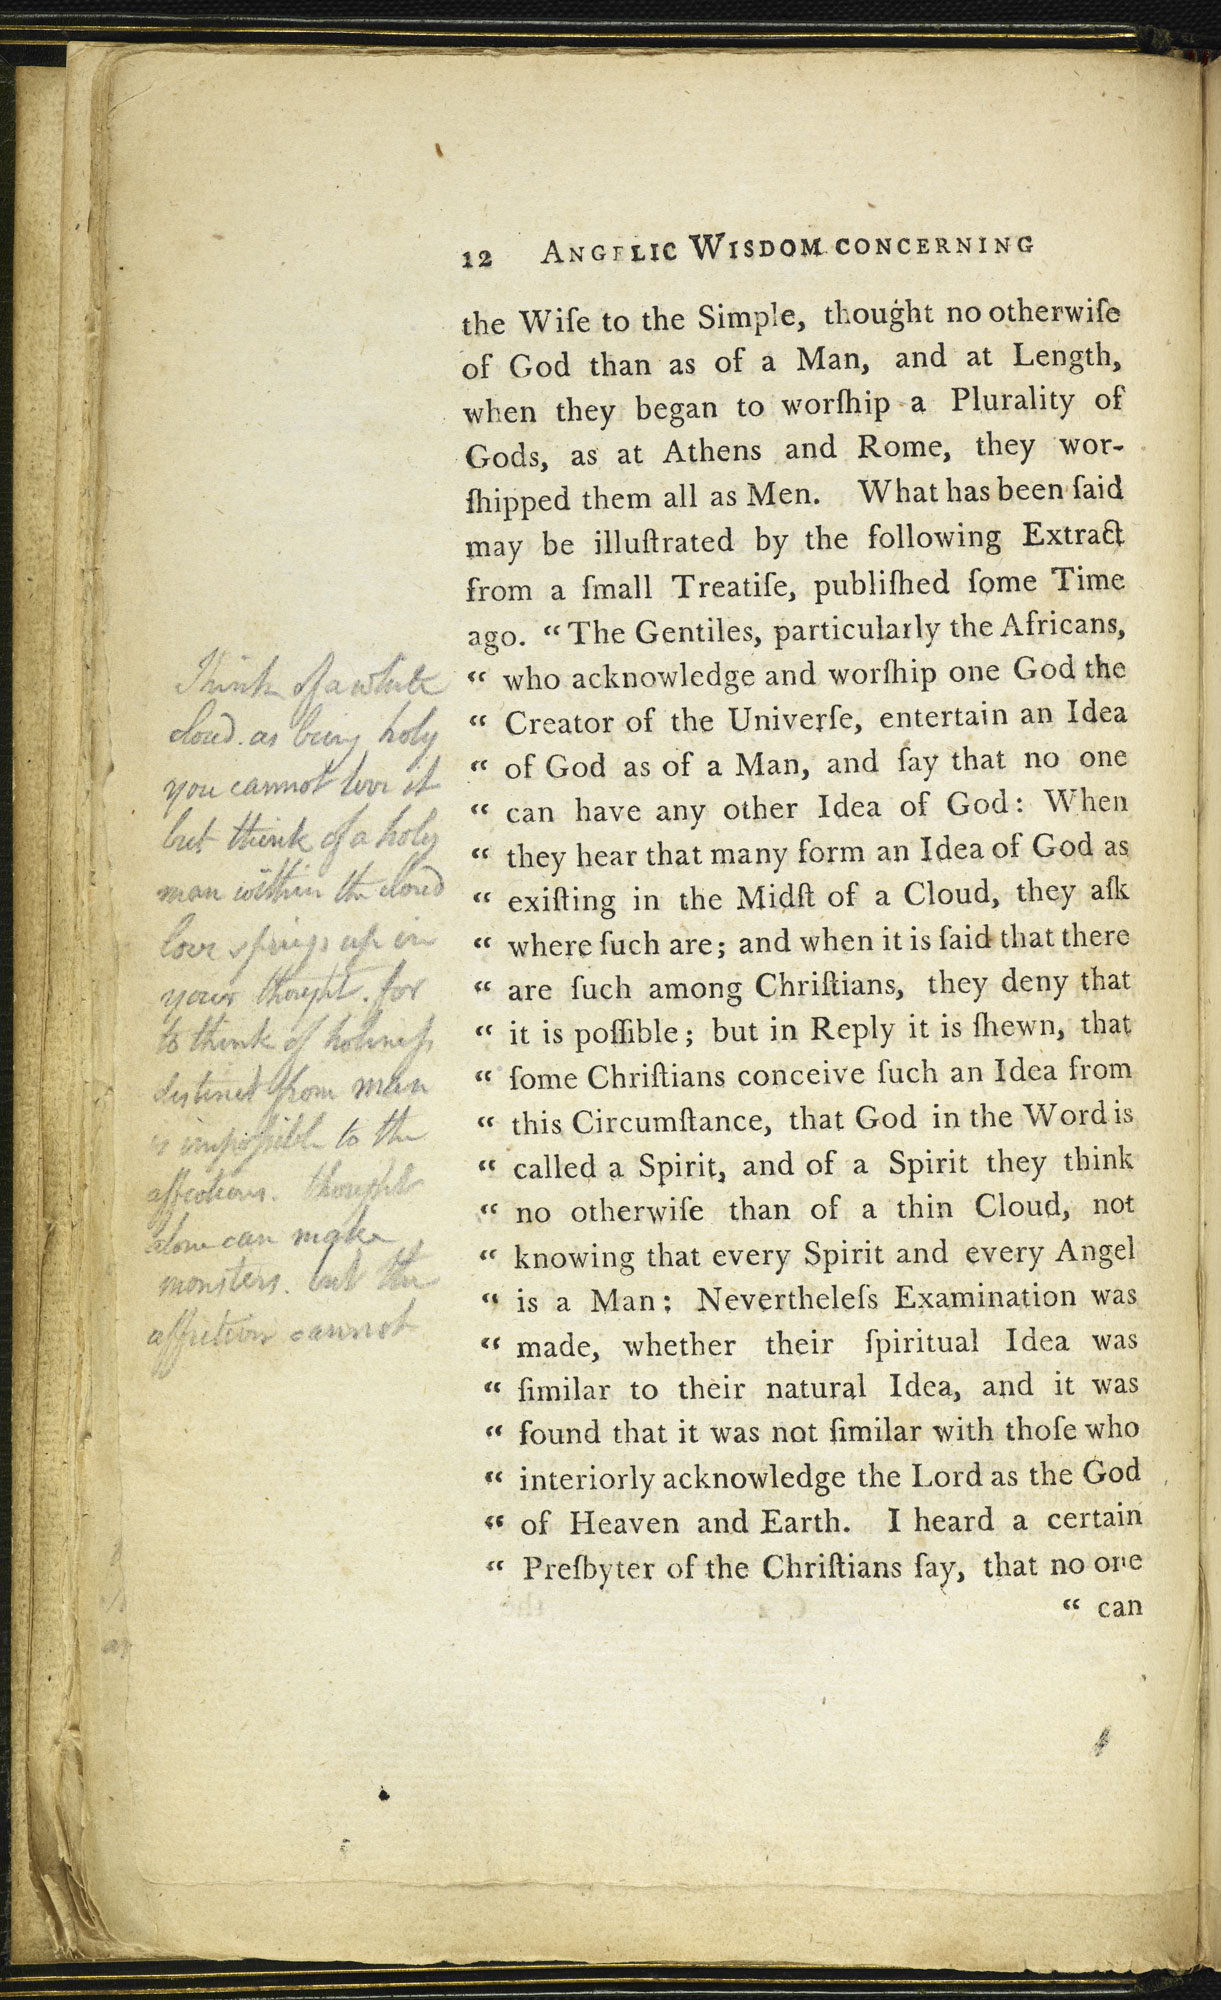 Swedenborg's The Wisdom of Angels with manuscript notes by William Blake